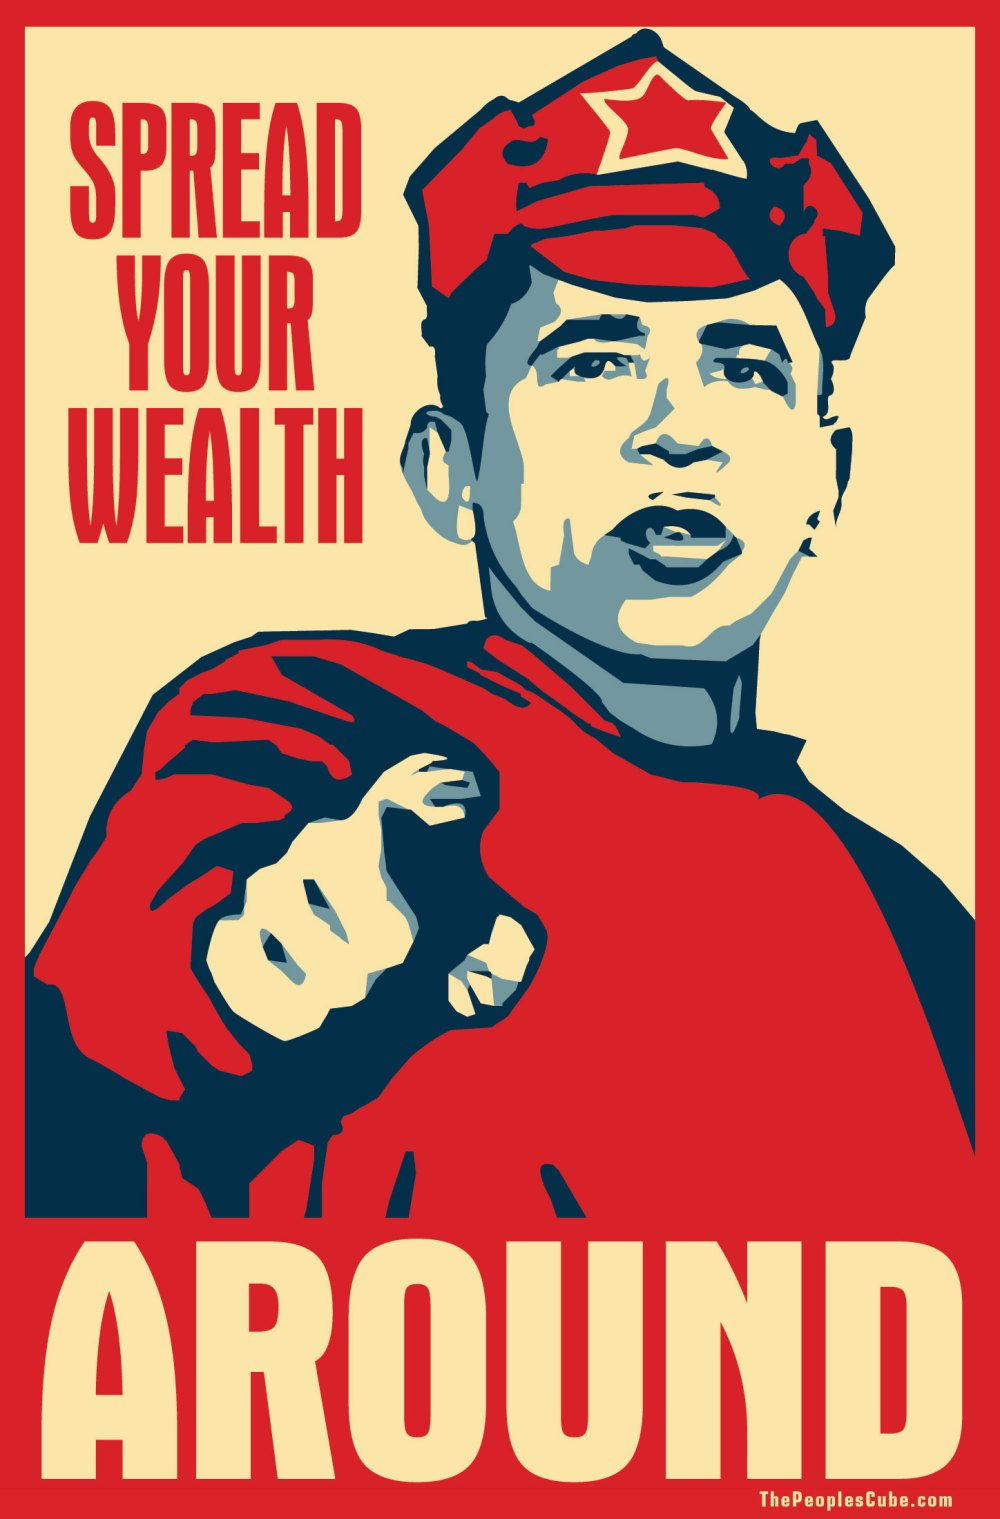 spread your wealth around